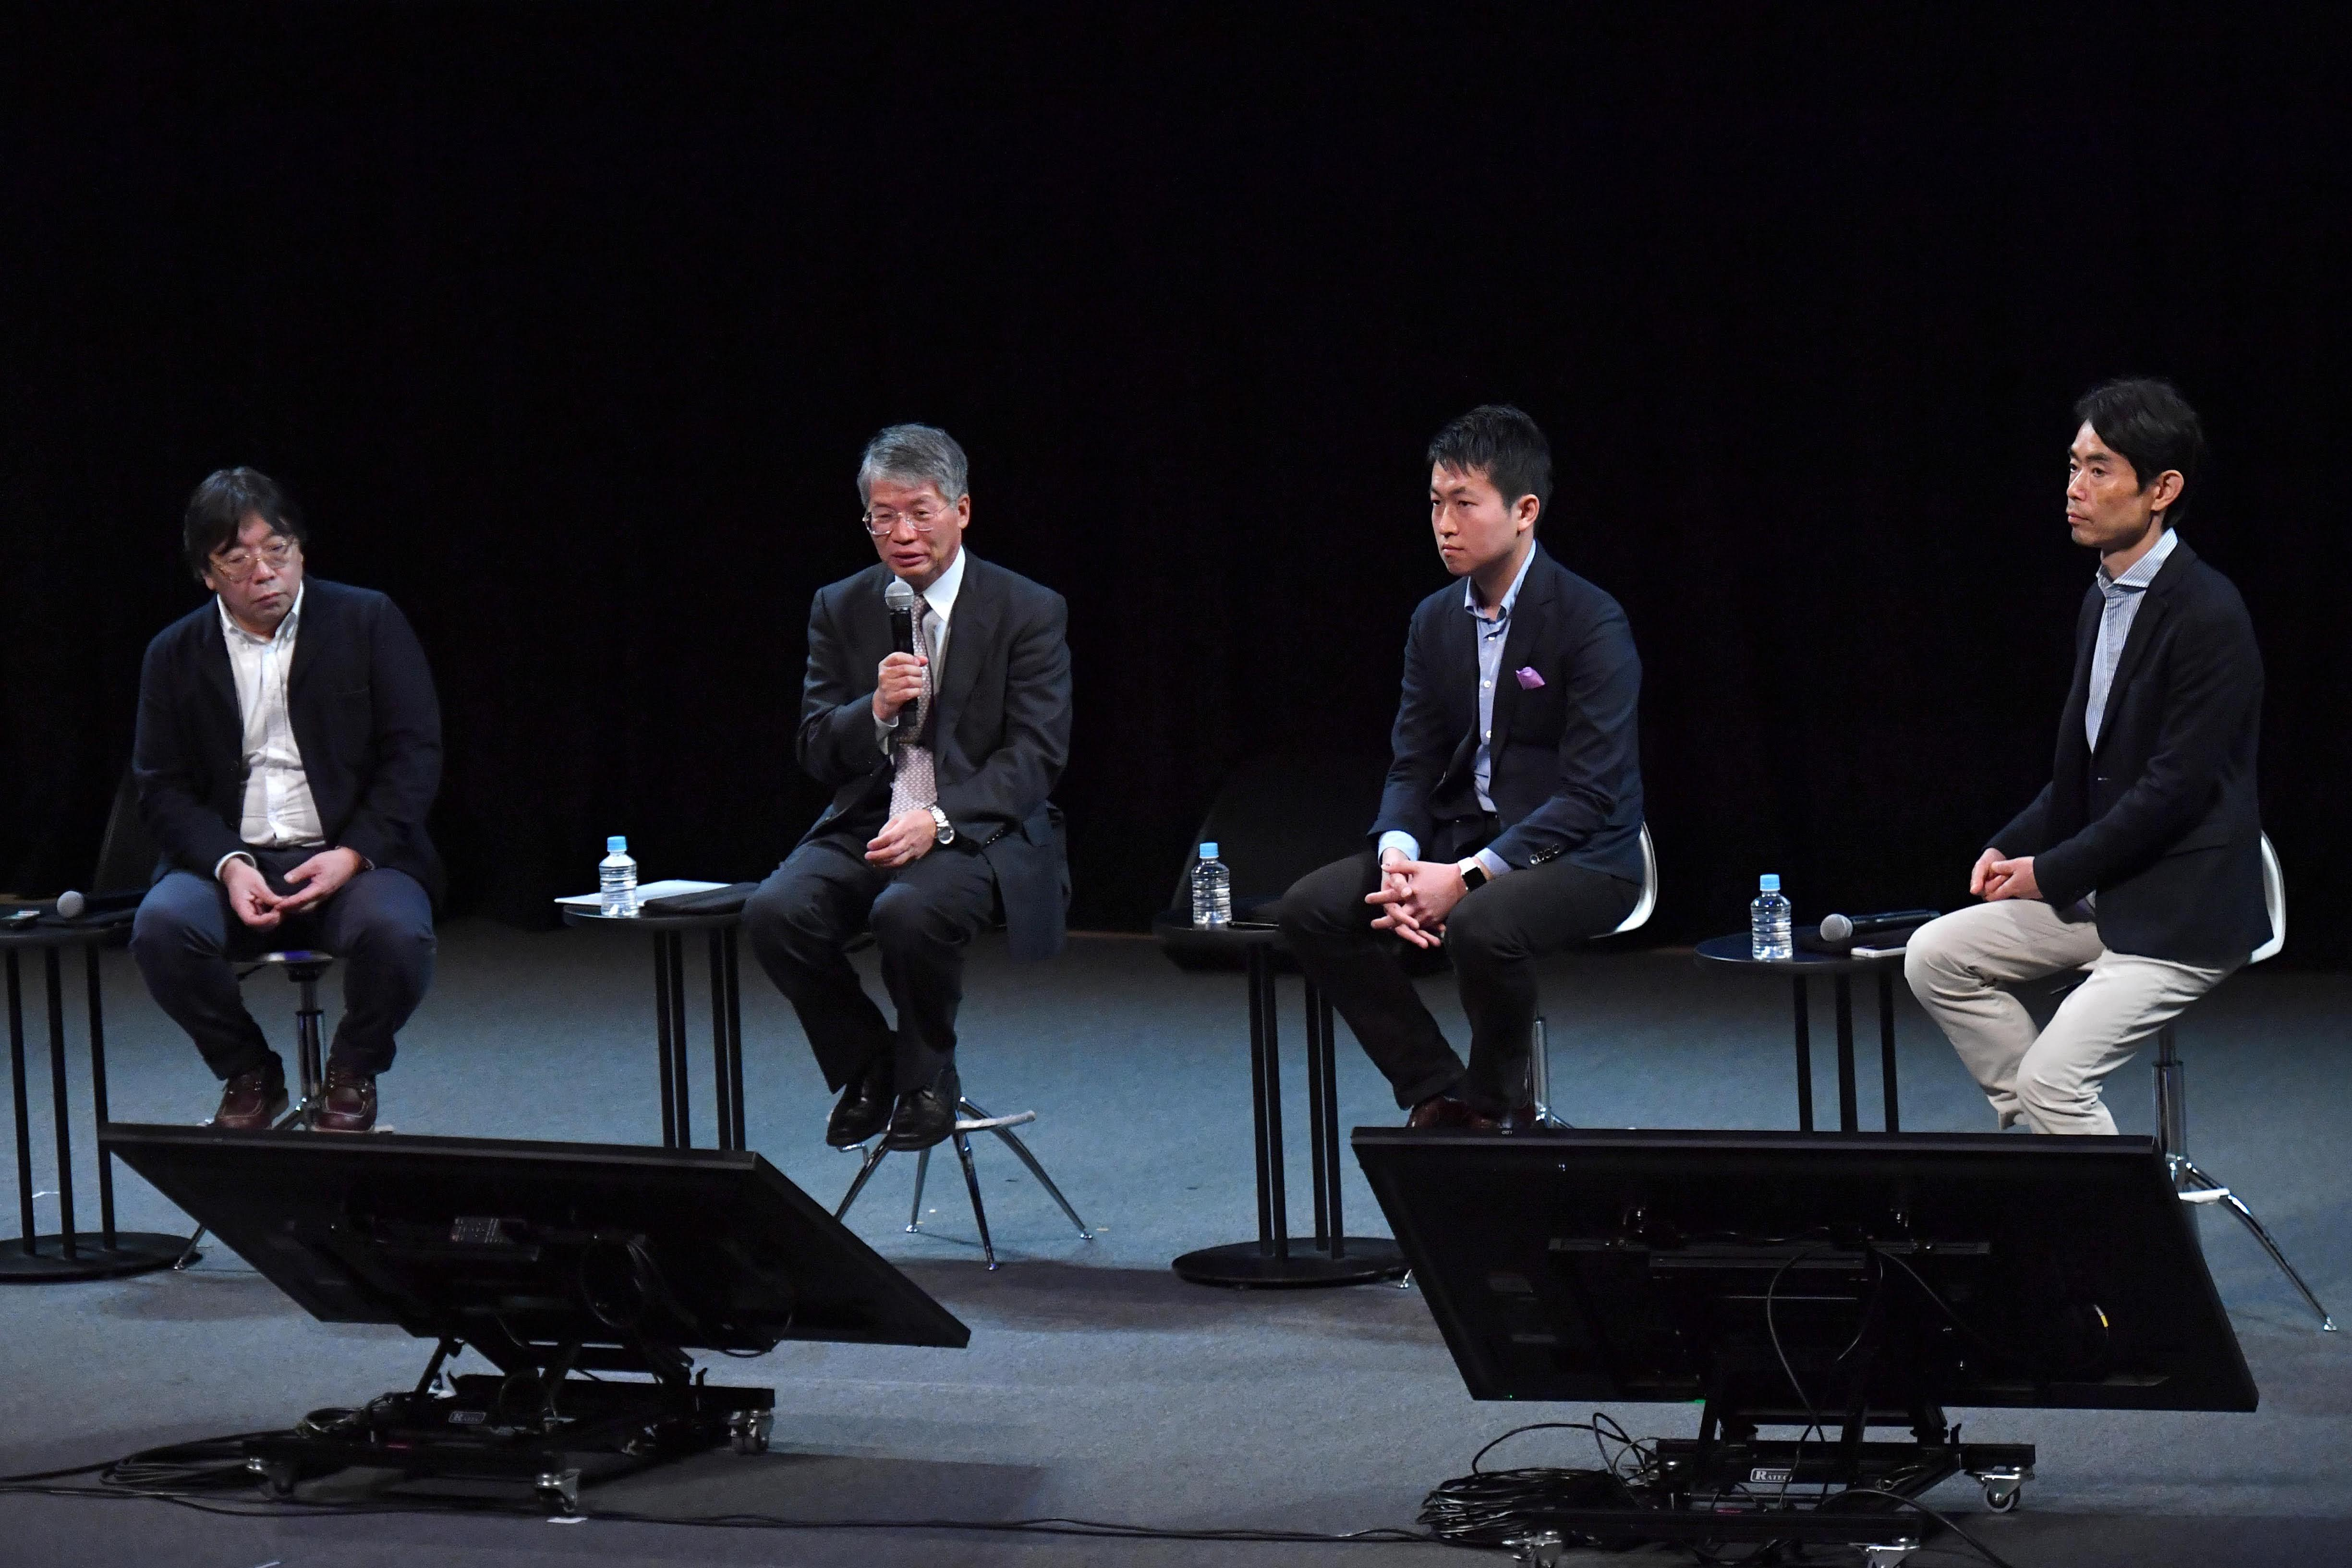 Leader's Session: Future of Mobility - Transportation and Distribution - / モビリティの未来